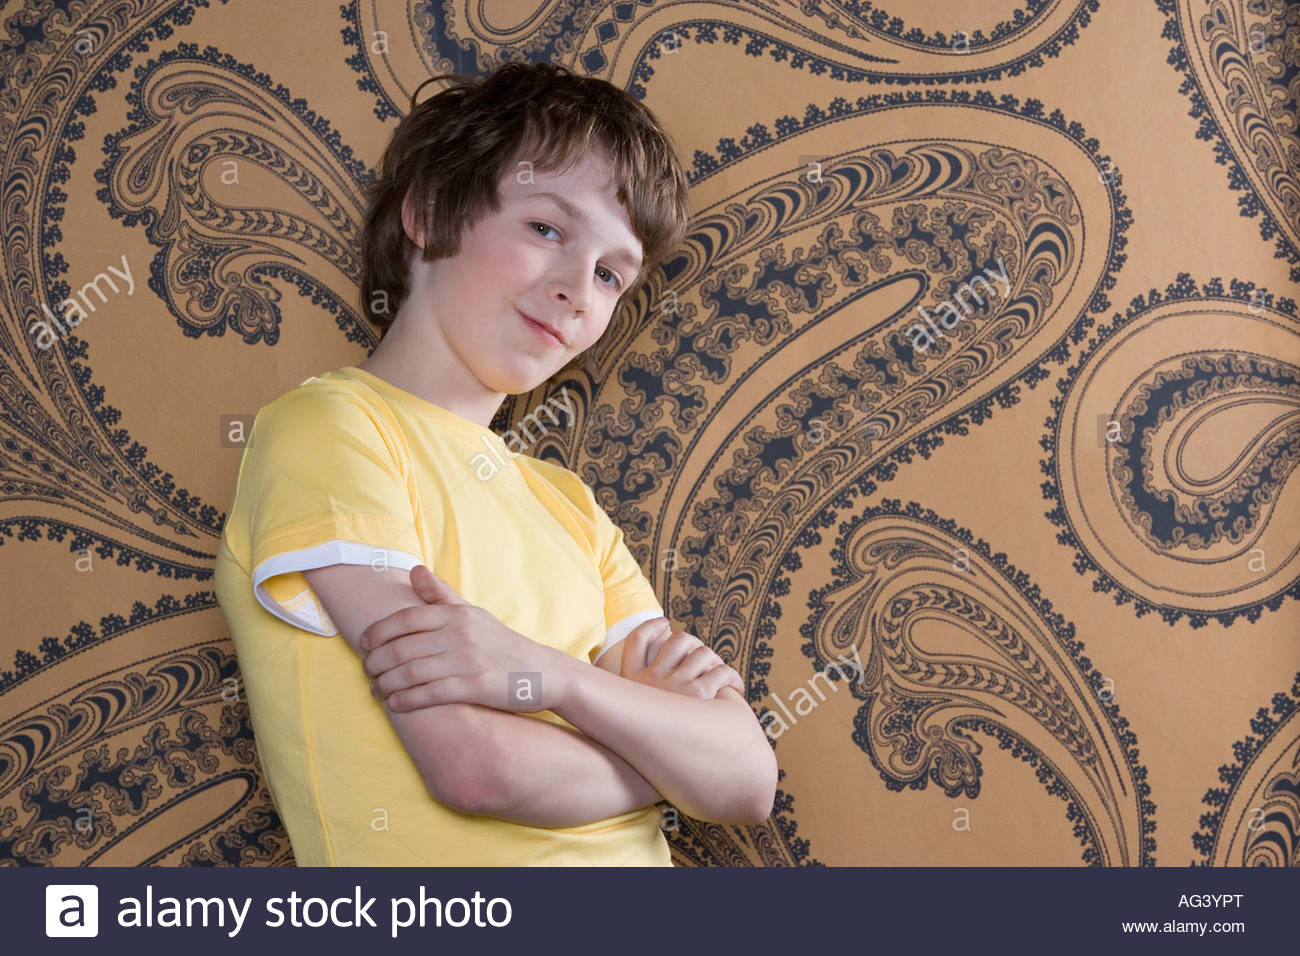 Boy with crossed arms - Stock Image